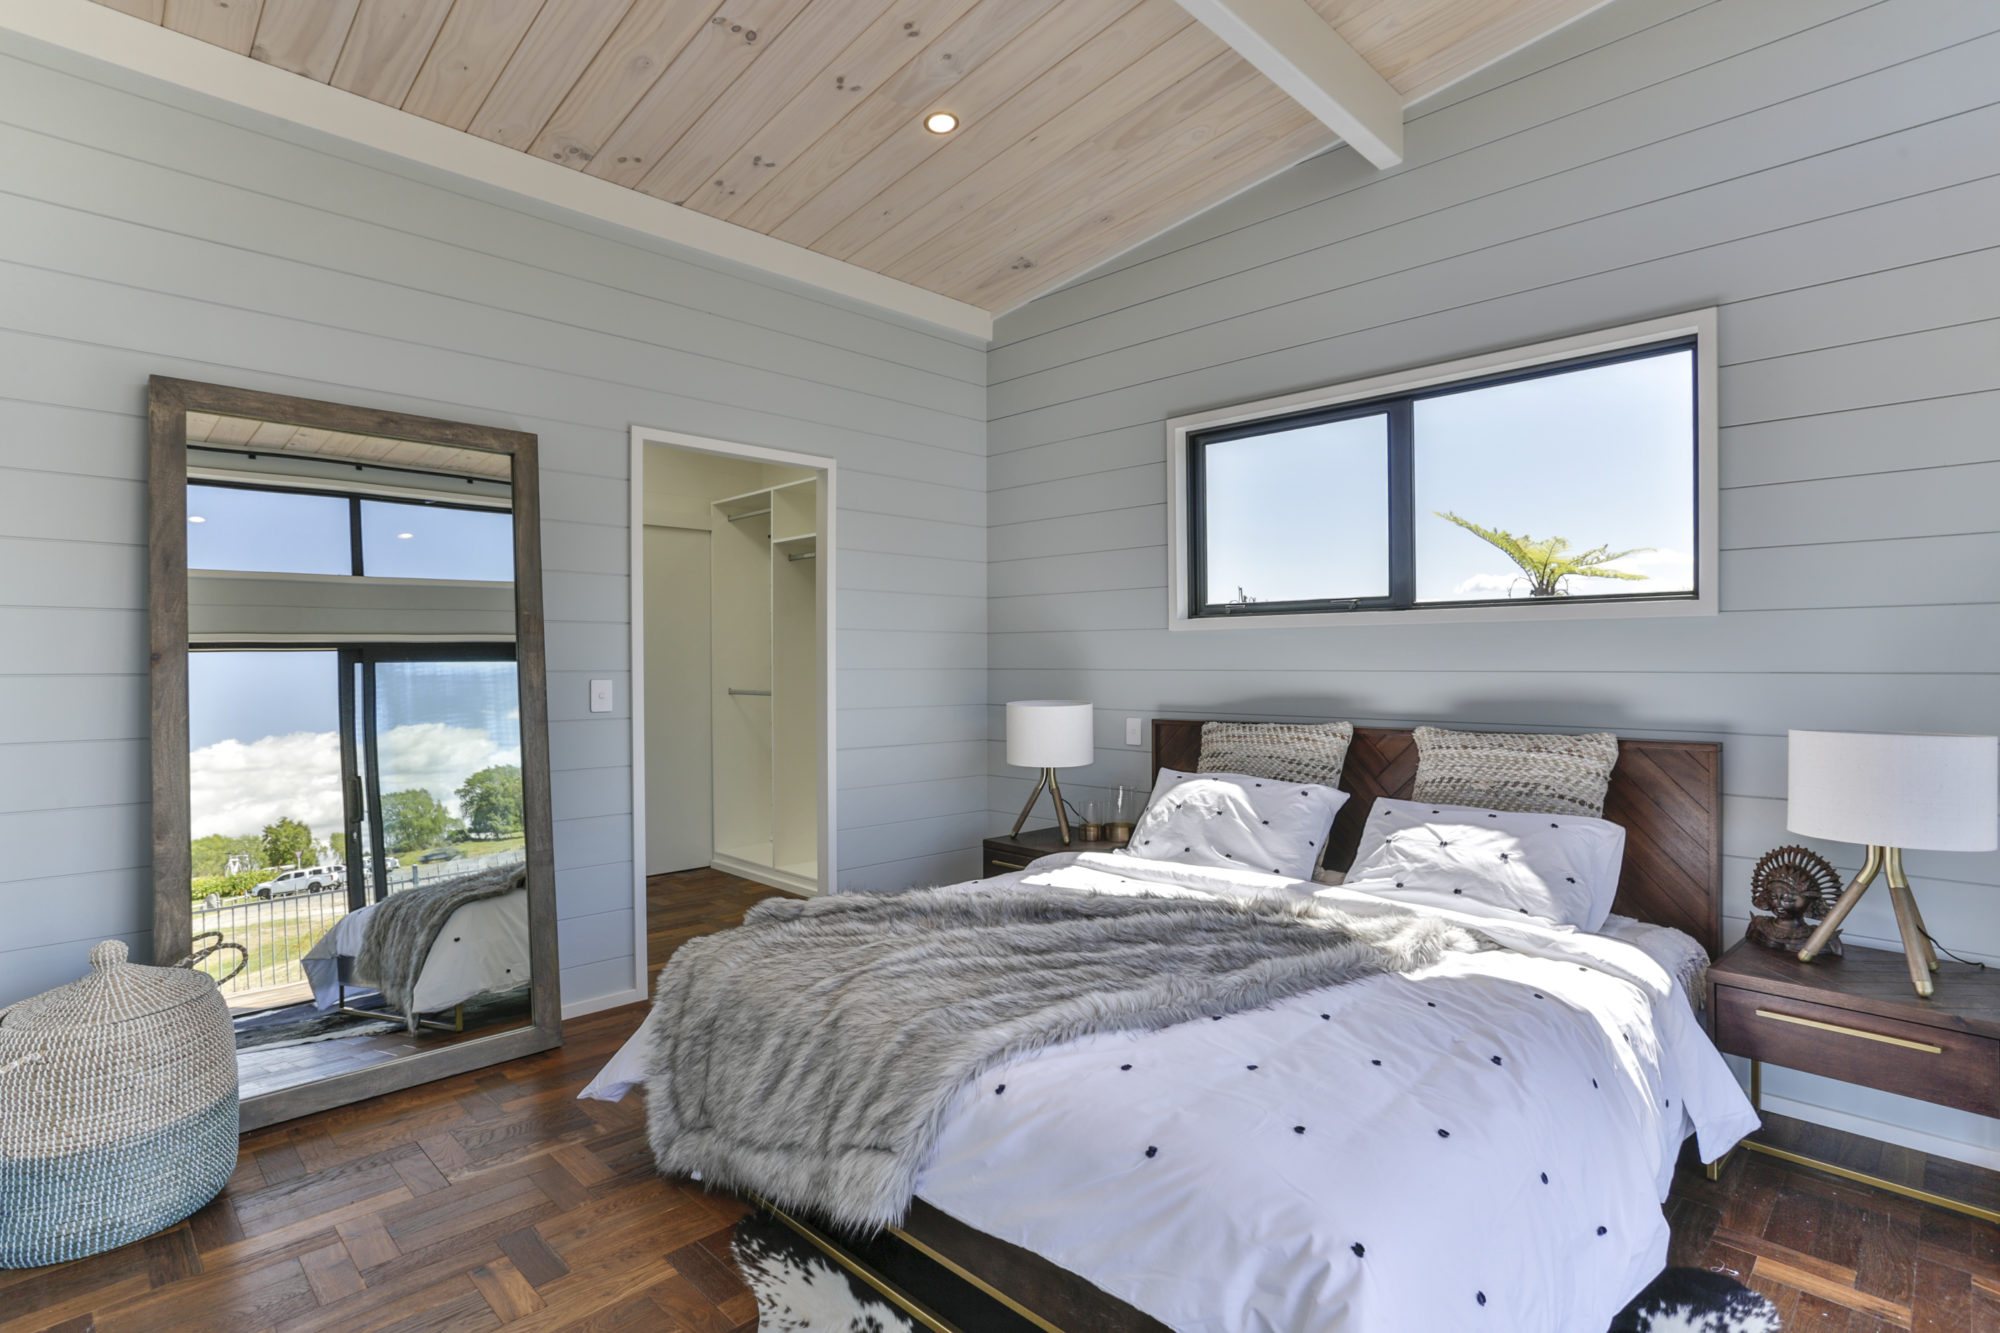 Lockwood Taupo with painted bedroom walls